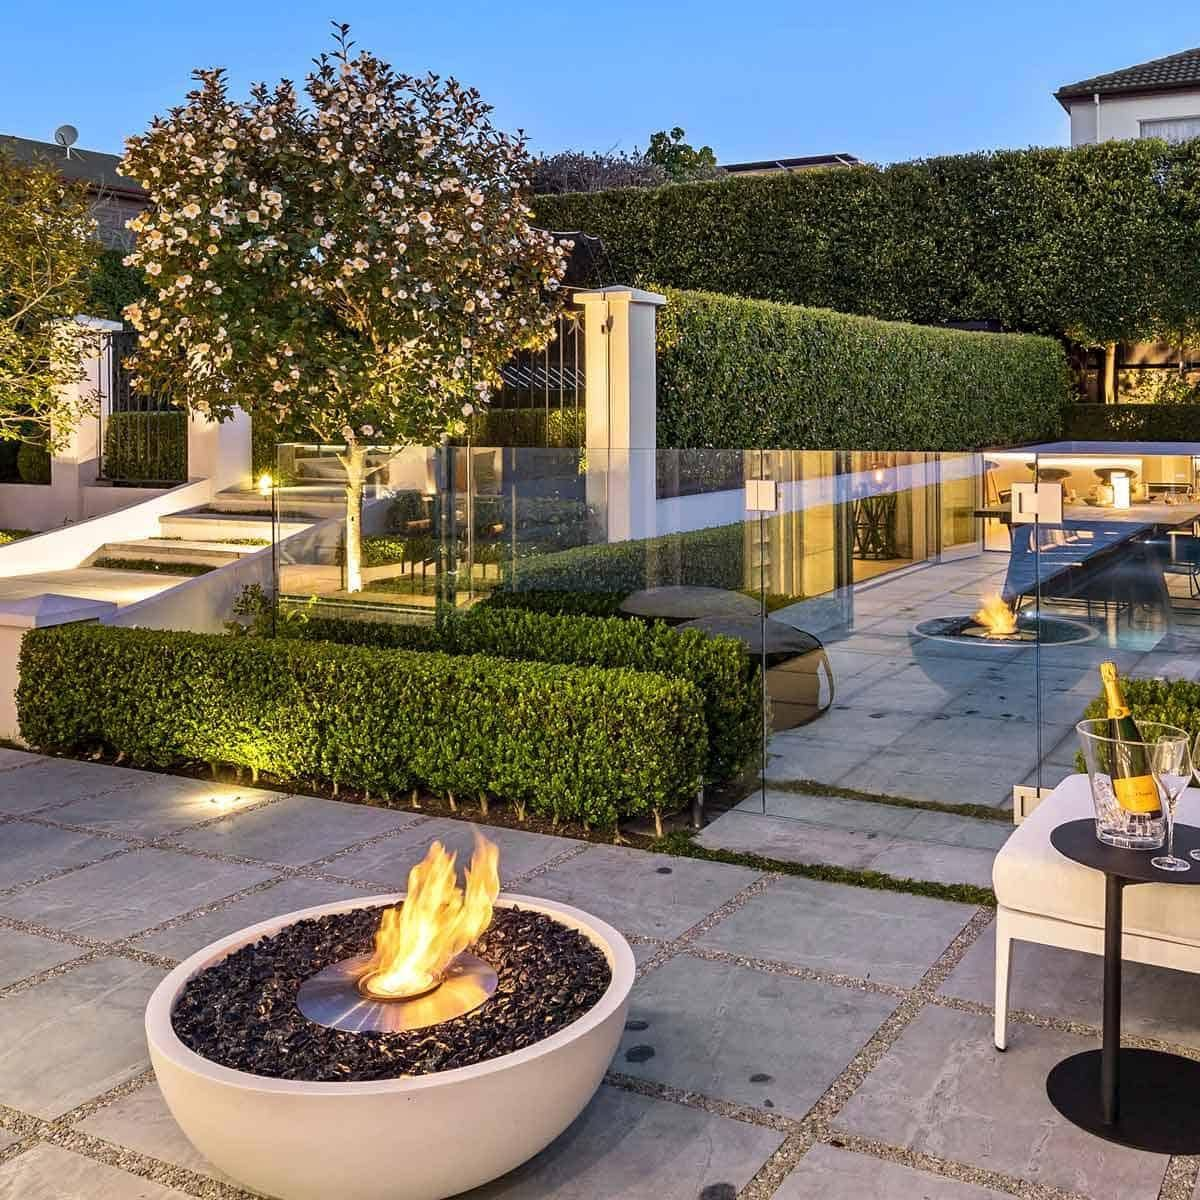 EcoSmart Fire Mix 600 Bioethanol Fire Pit Bowl - Eco Bone / Stainless Steel / No